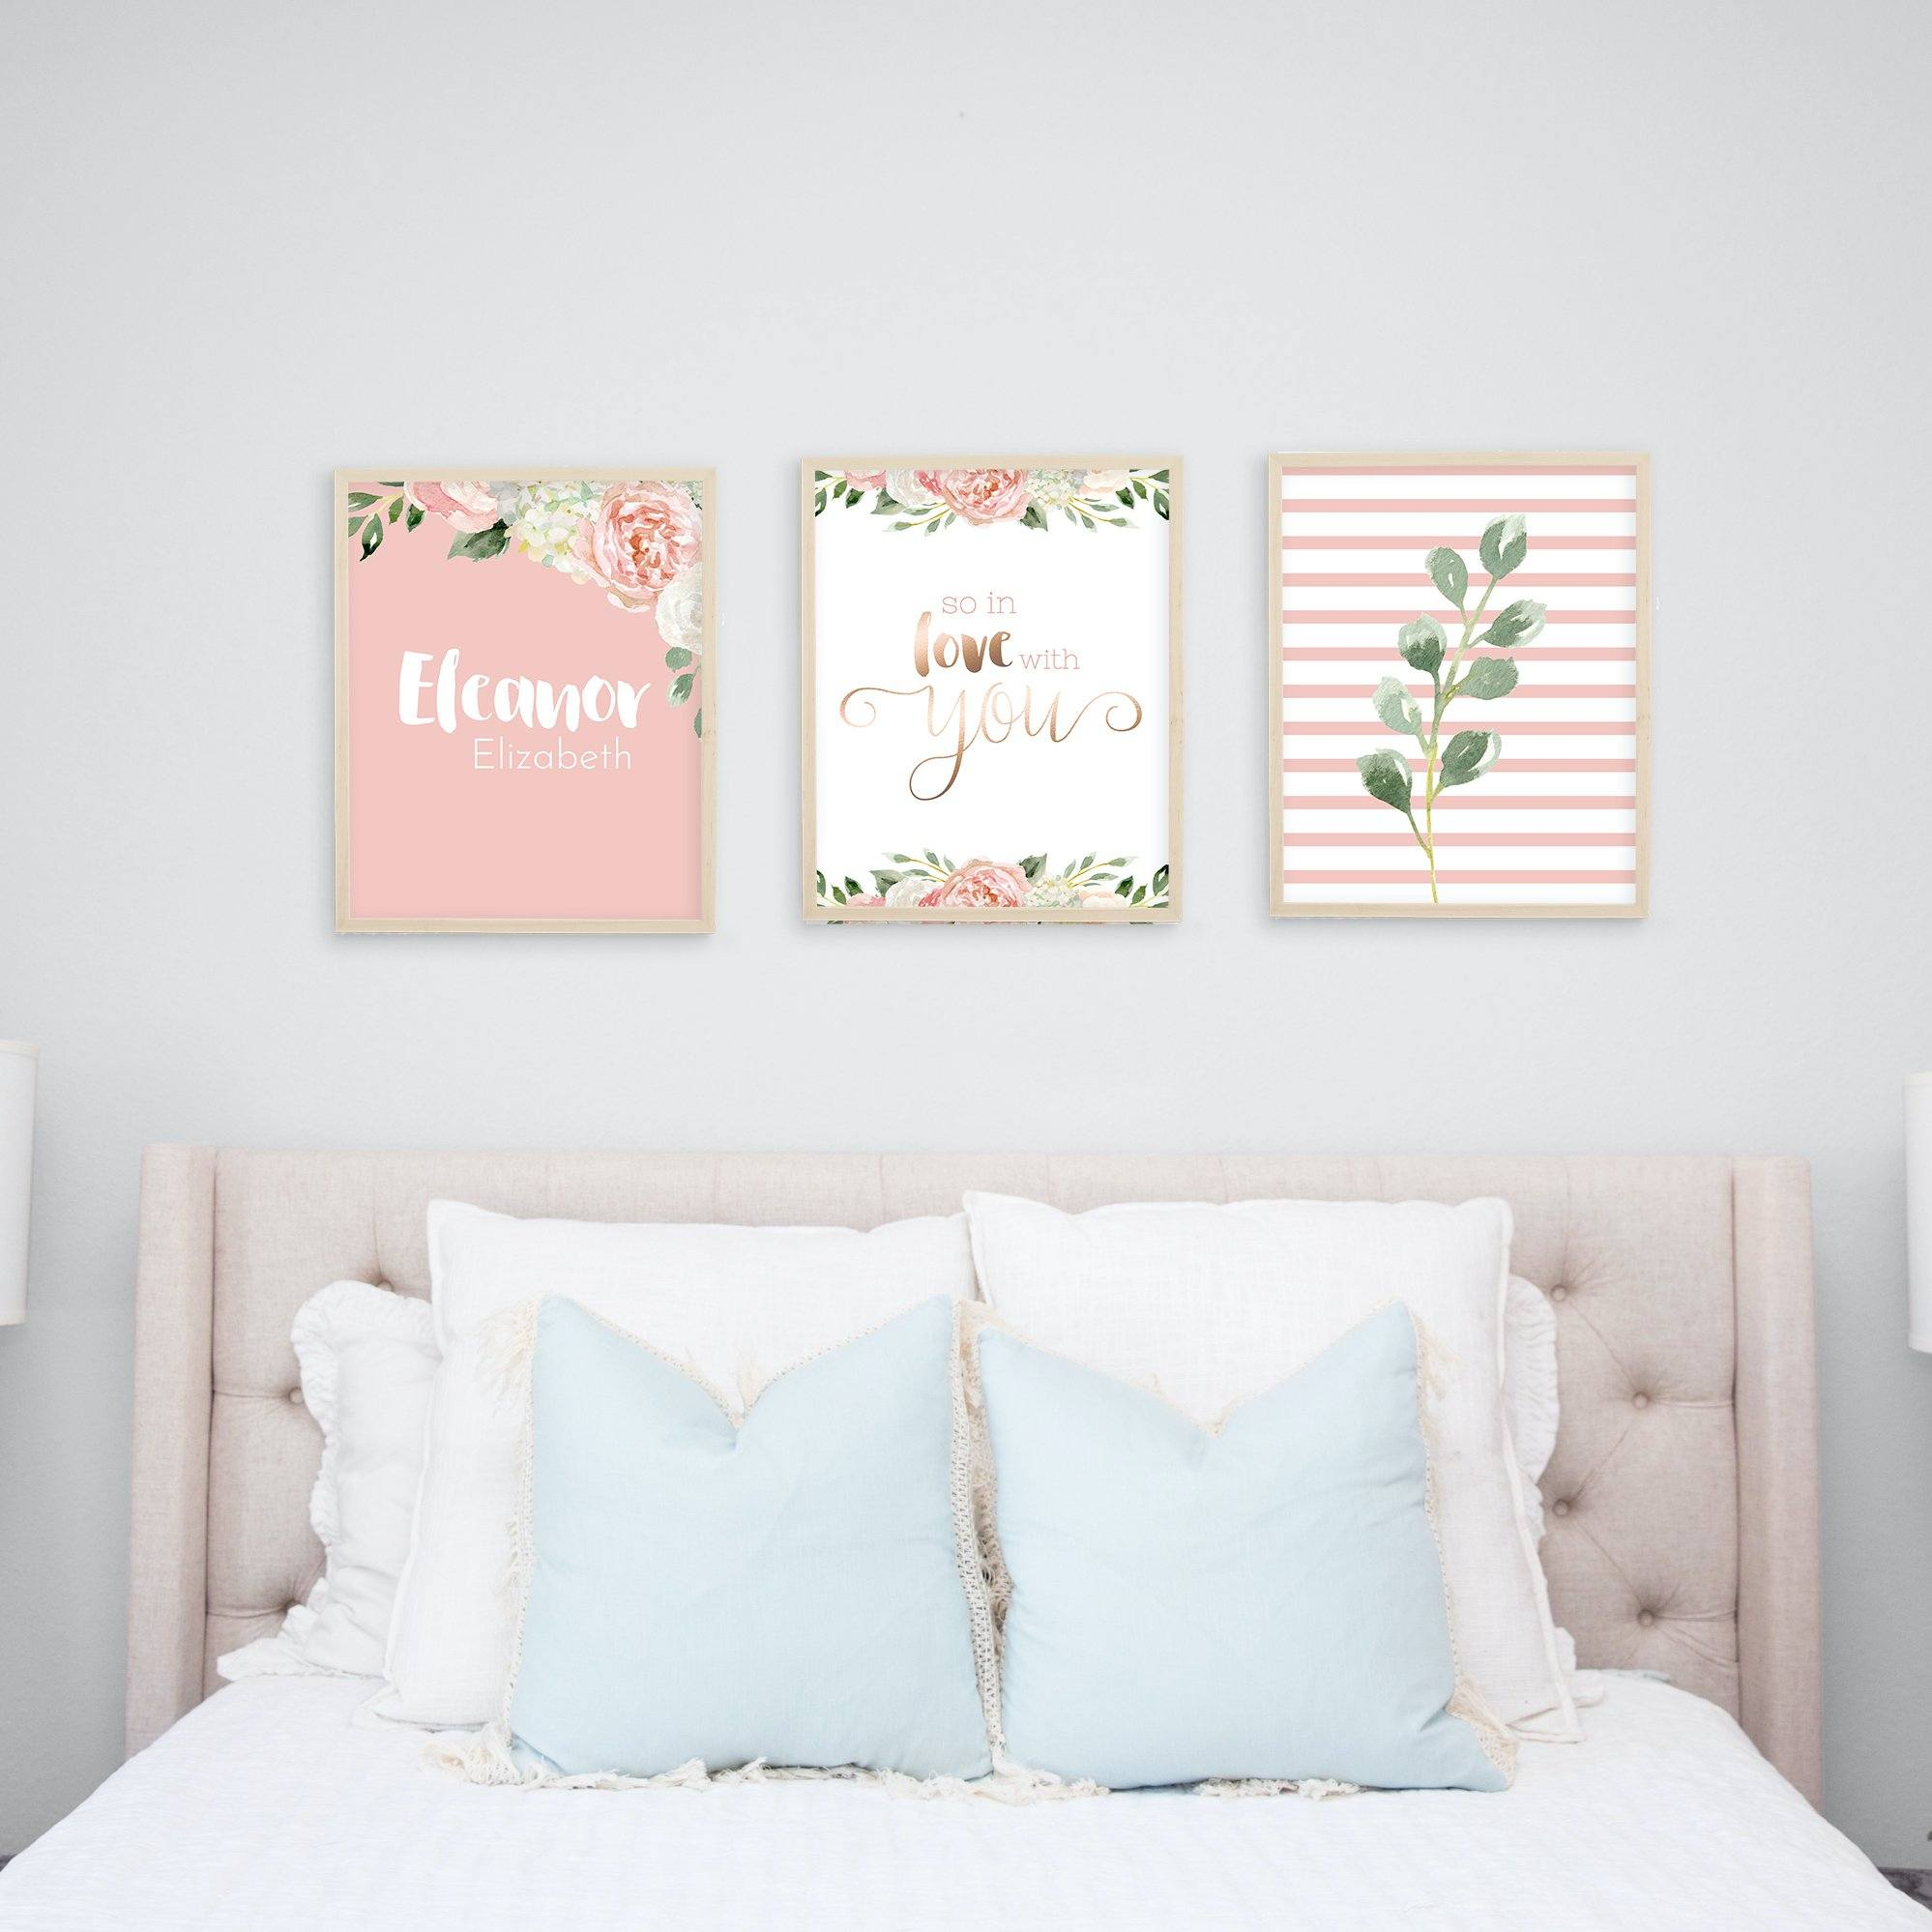 Dark Blush #4 // Set of 3 Prints Nursery Wall Decor for a Girl TheGracefulGoose